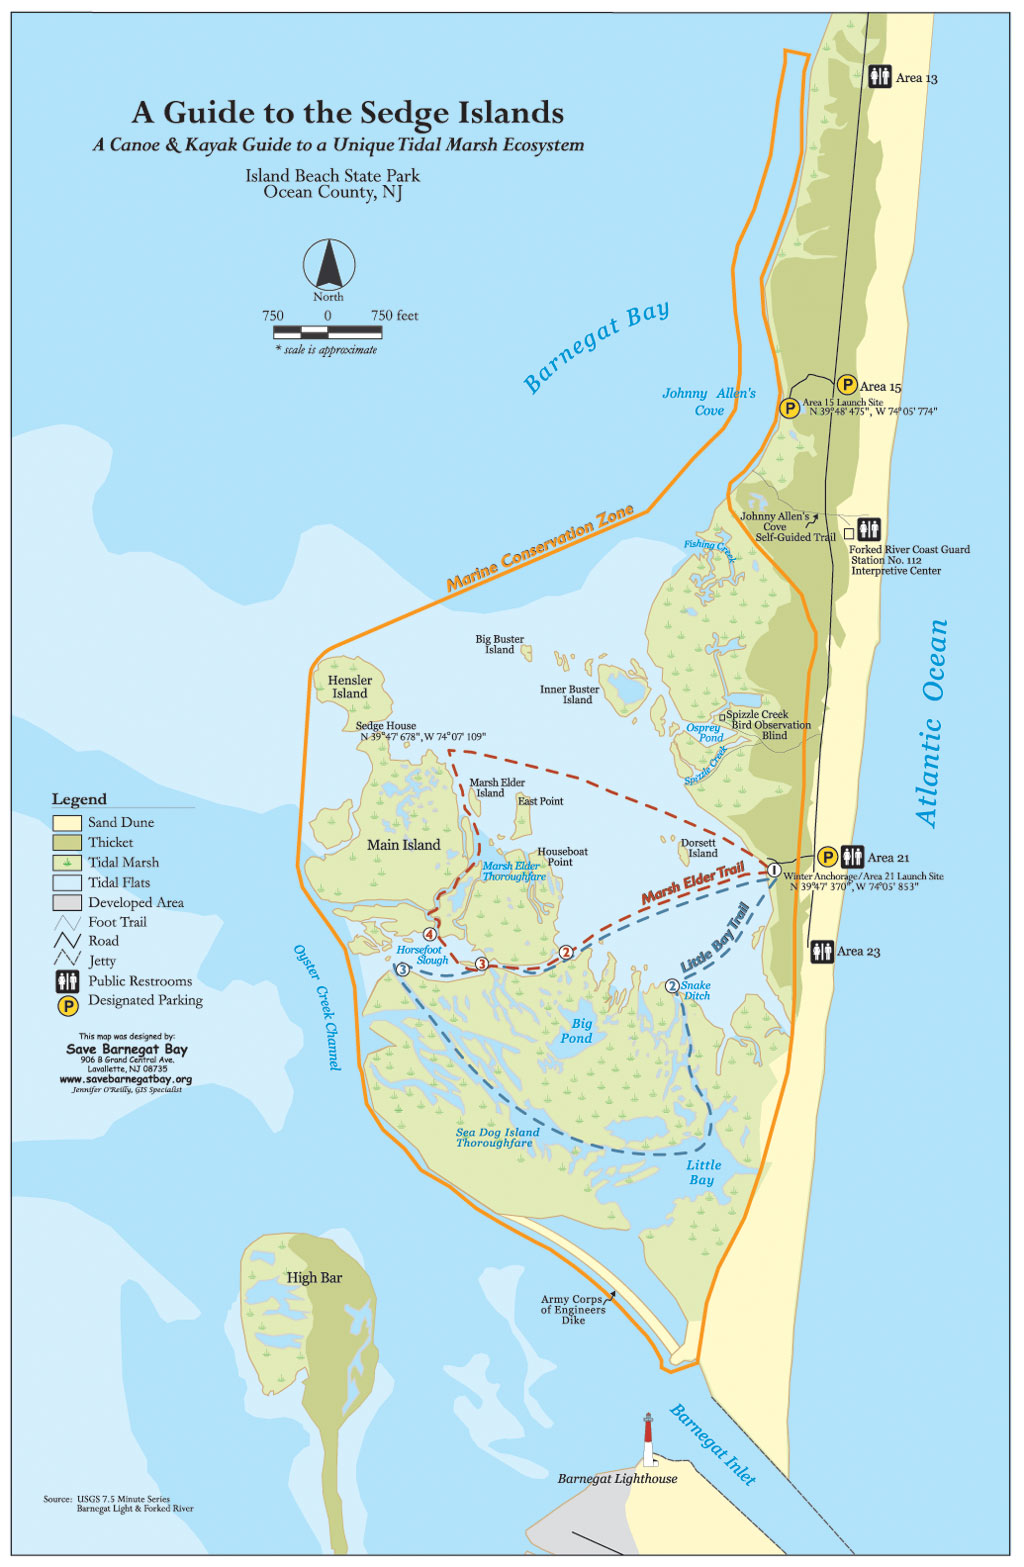 Island beach state park canoe and kayak map barnegat bay for Island beach state park fishing